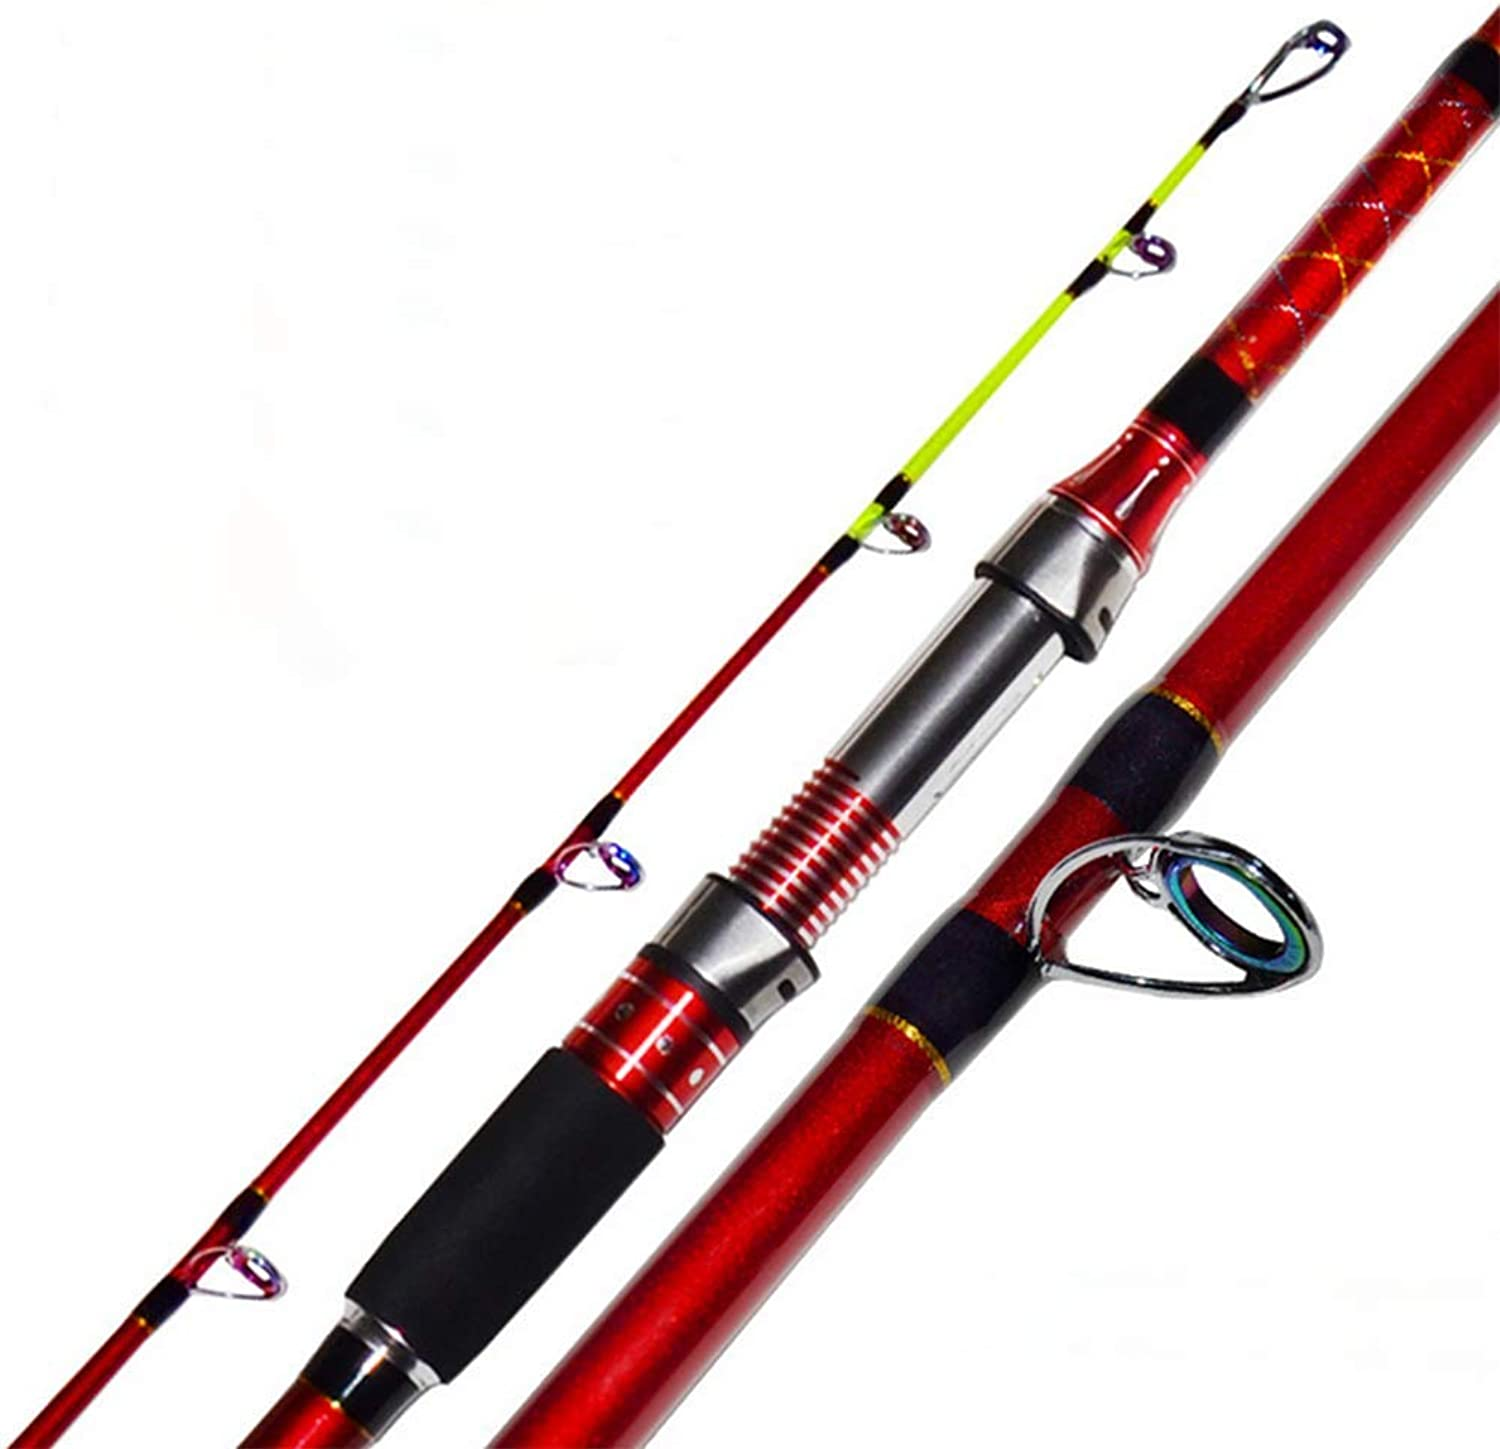 Outdoor Sea Fishing Rod, Shrinking and Long-Distance Fishing Rod